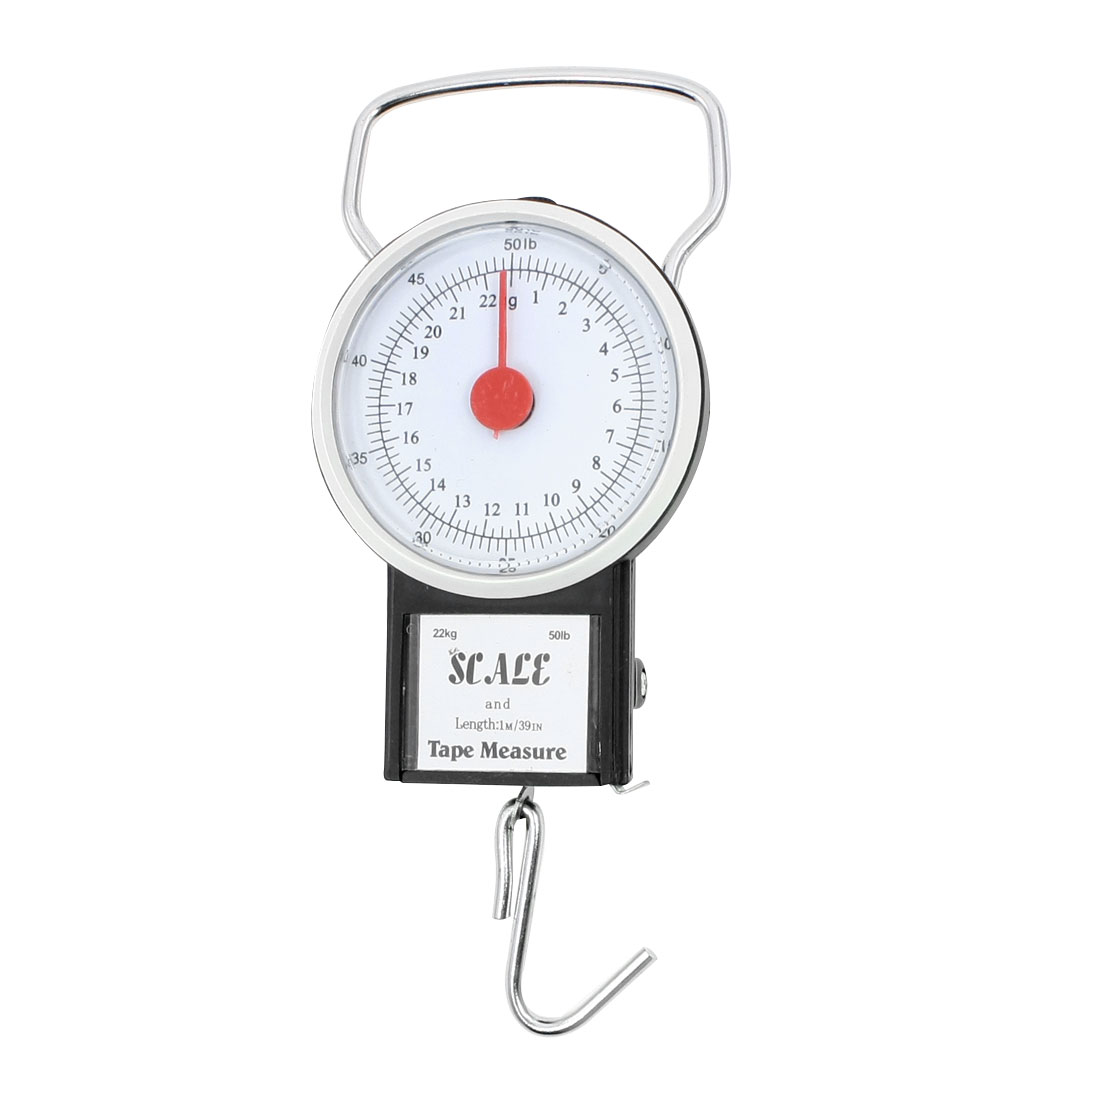 22kg 50lb Luggage Fishing Hanging Weight Measure Tool Handheld Scale